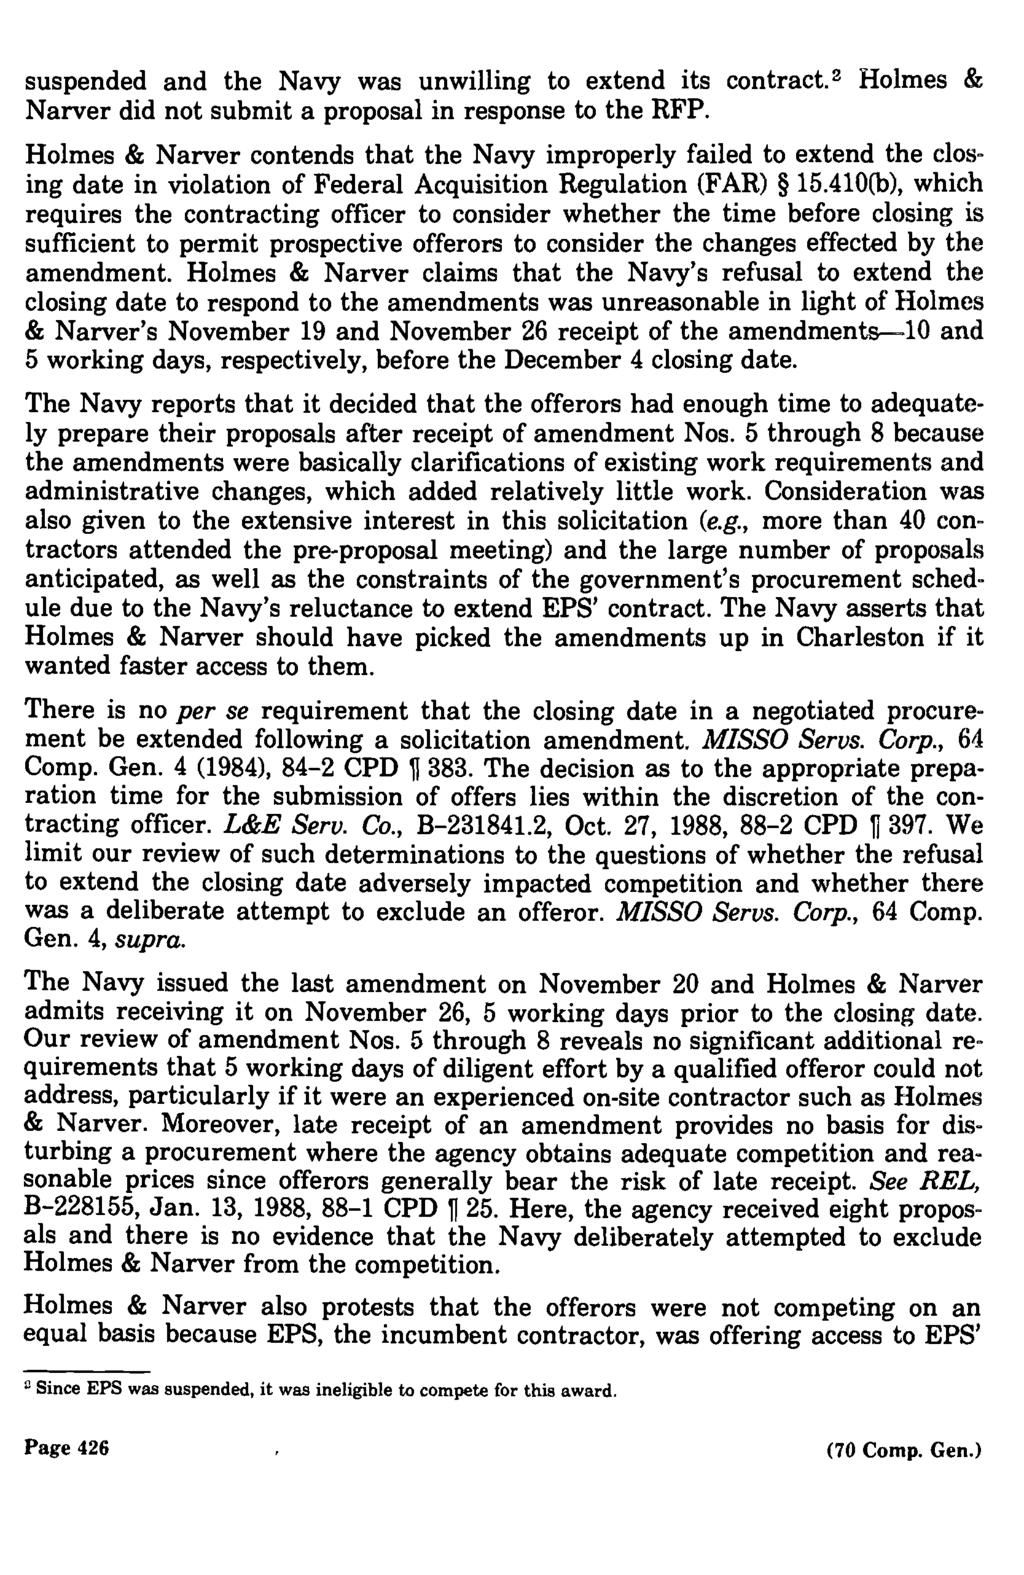 suspended and the Navy was unwilling to extend its contract.2 Holmes & Narver did not submit a proposal in response to the RFP.